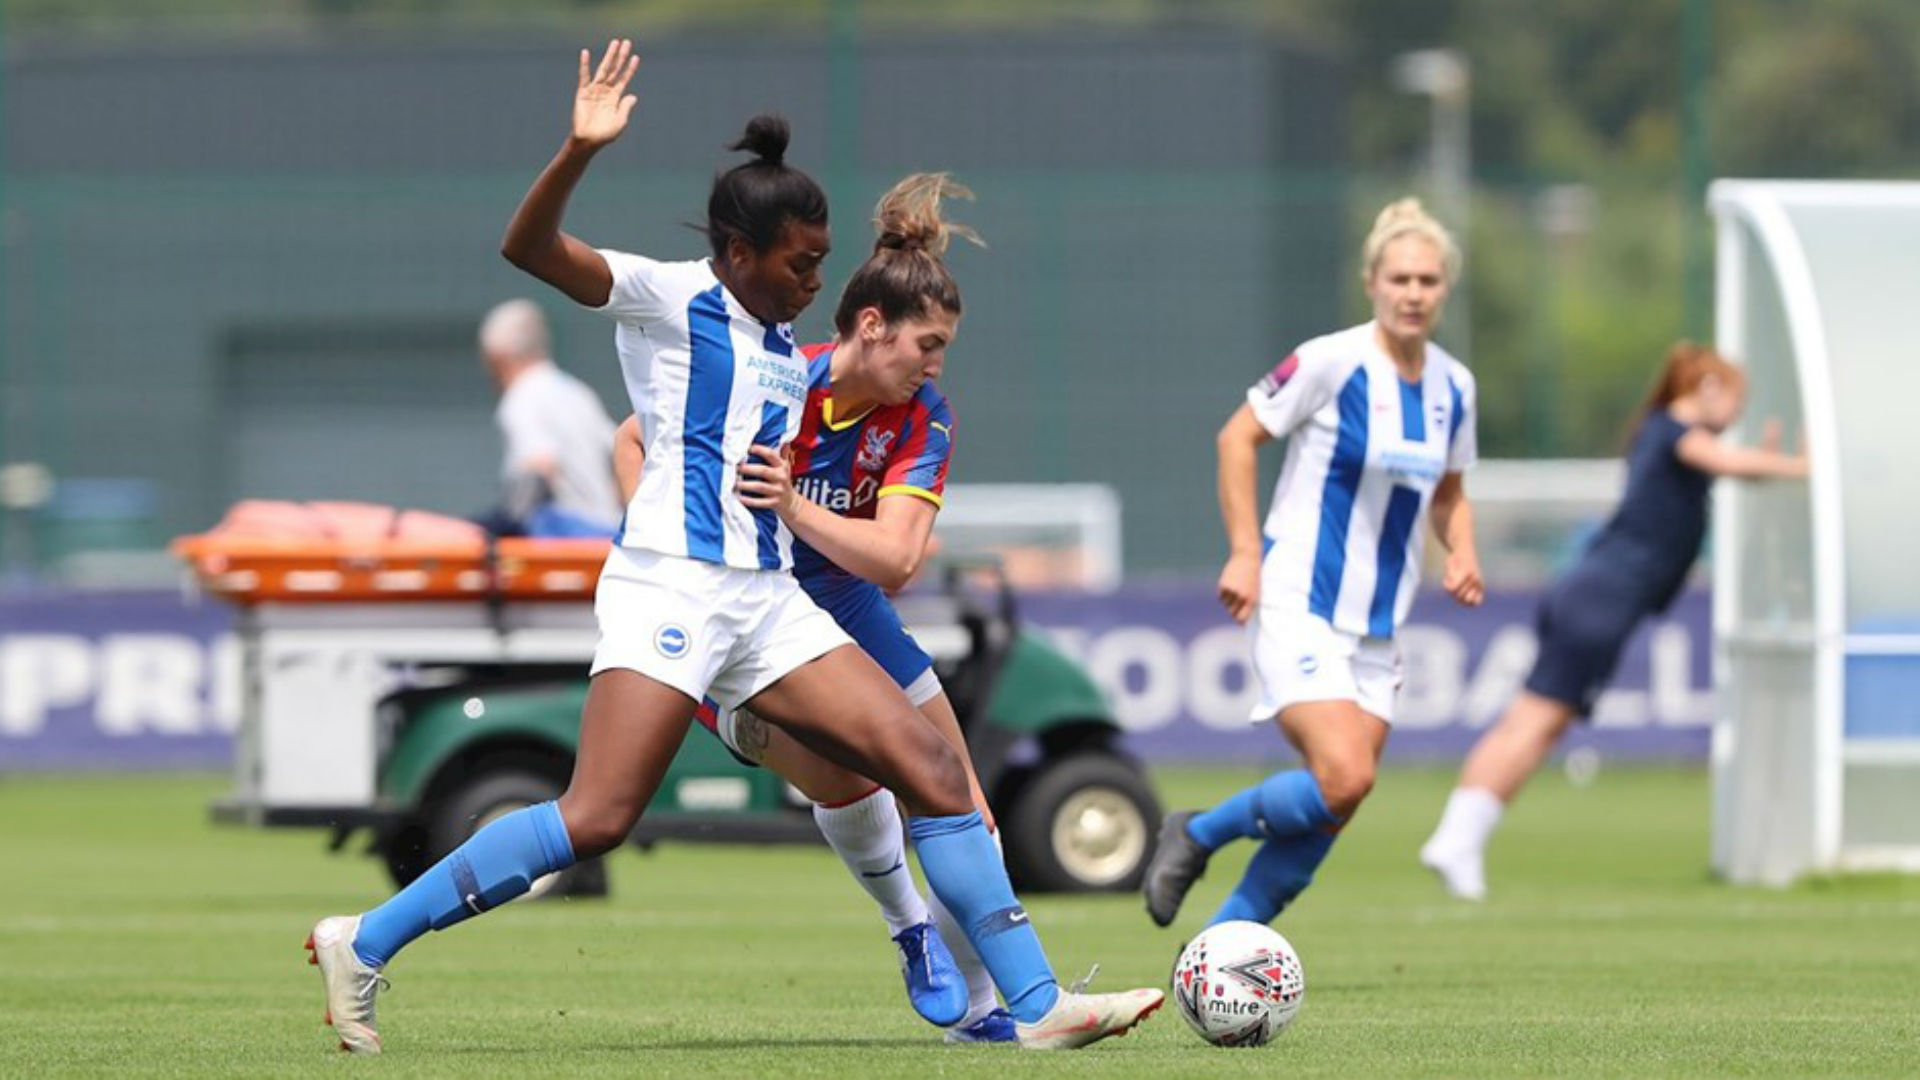 English Women's Cup: Ini-Abasi Umotong helps Brighton book quarter-final ticket